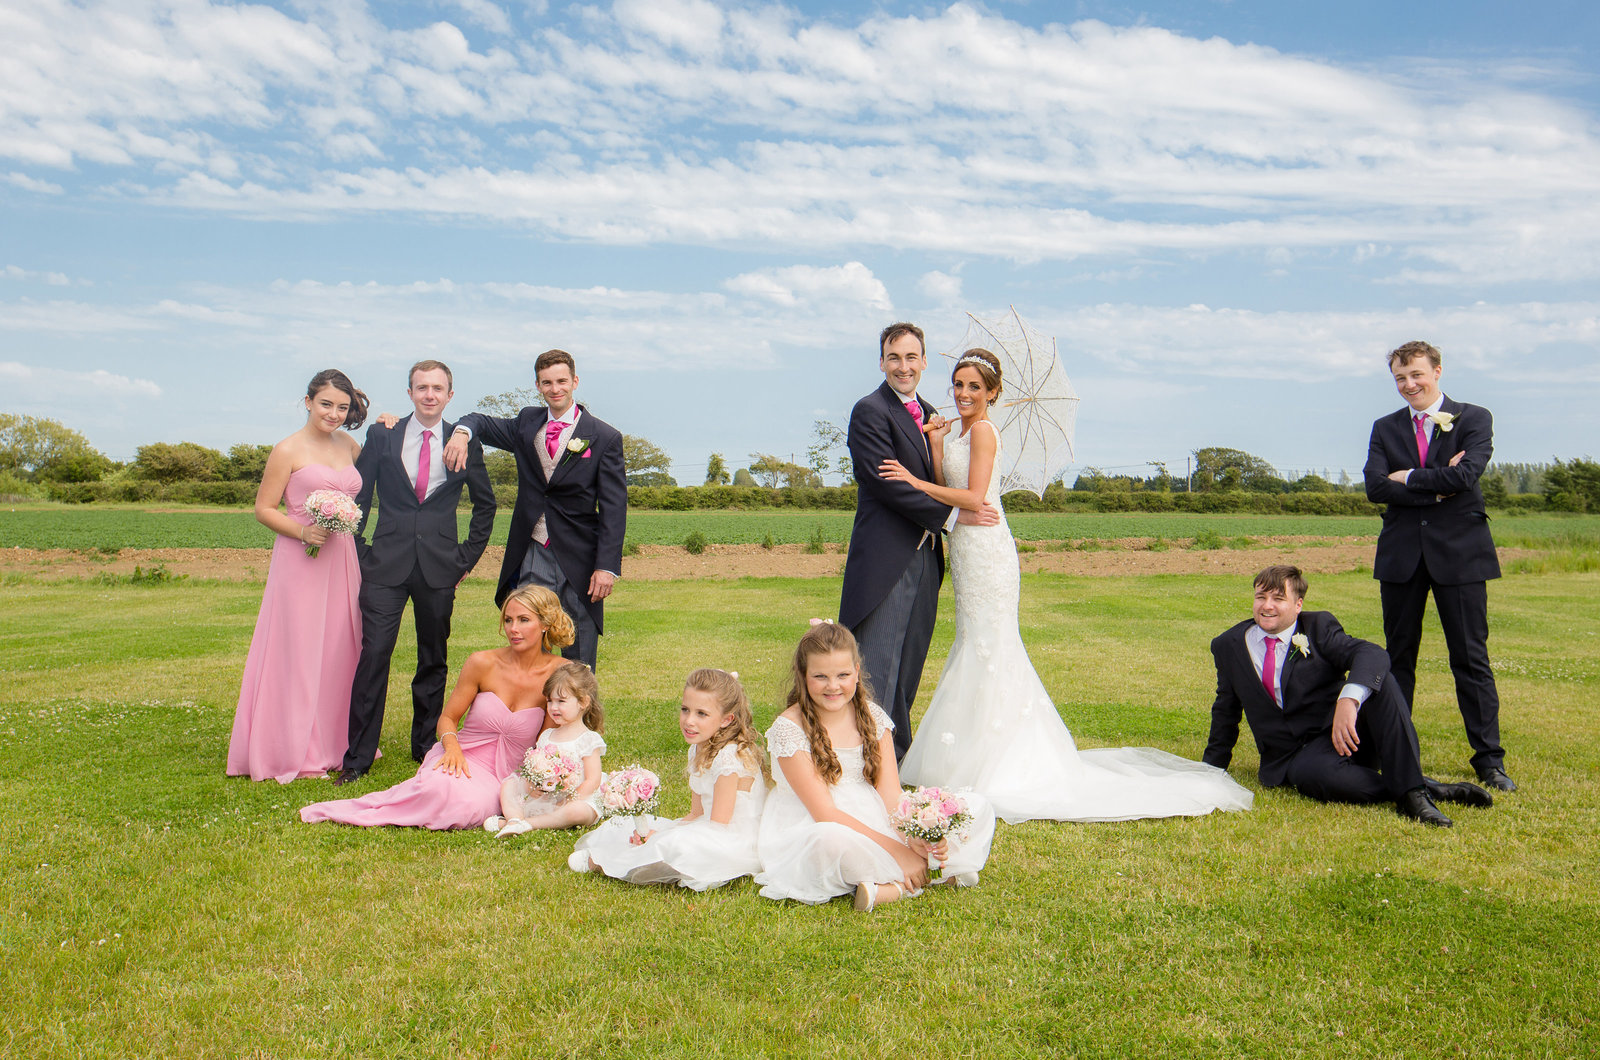 adorlee-0676-southend-barns-wedding-photographer-chichester-west-sussex